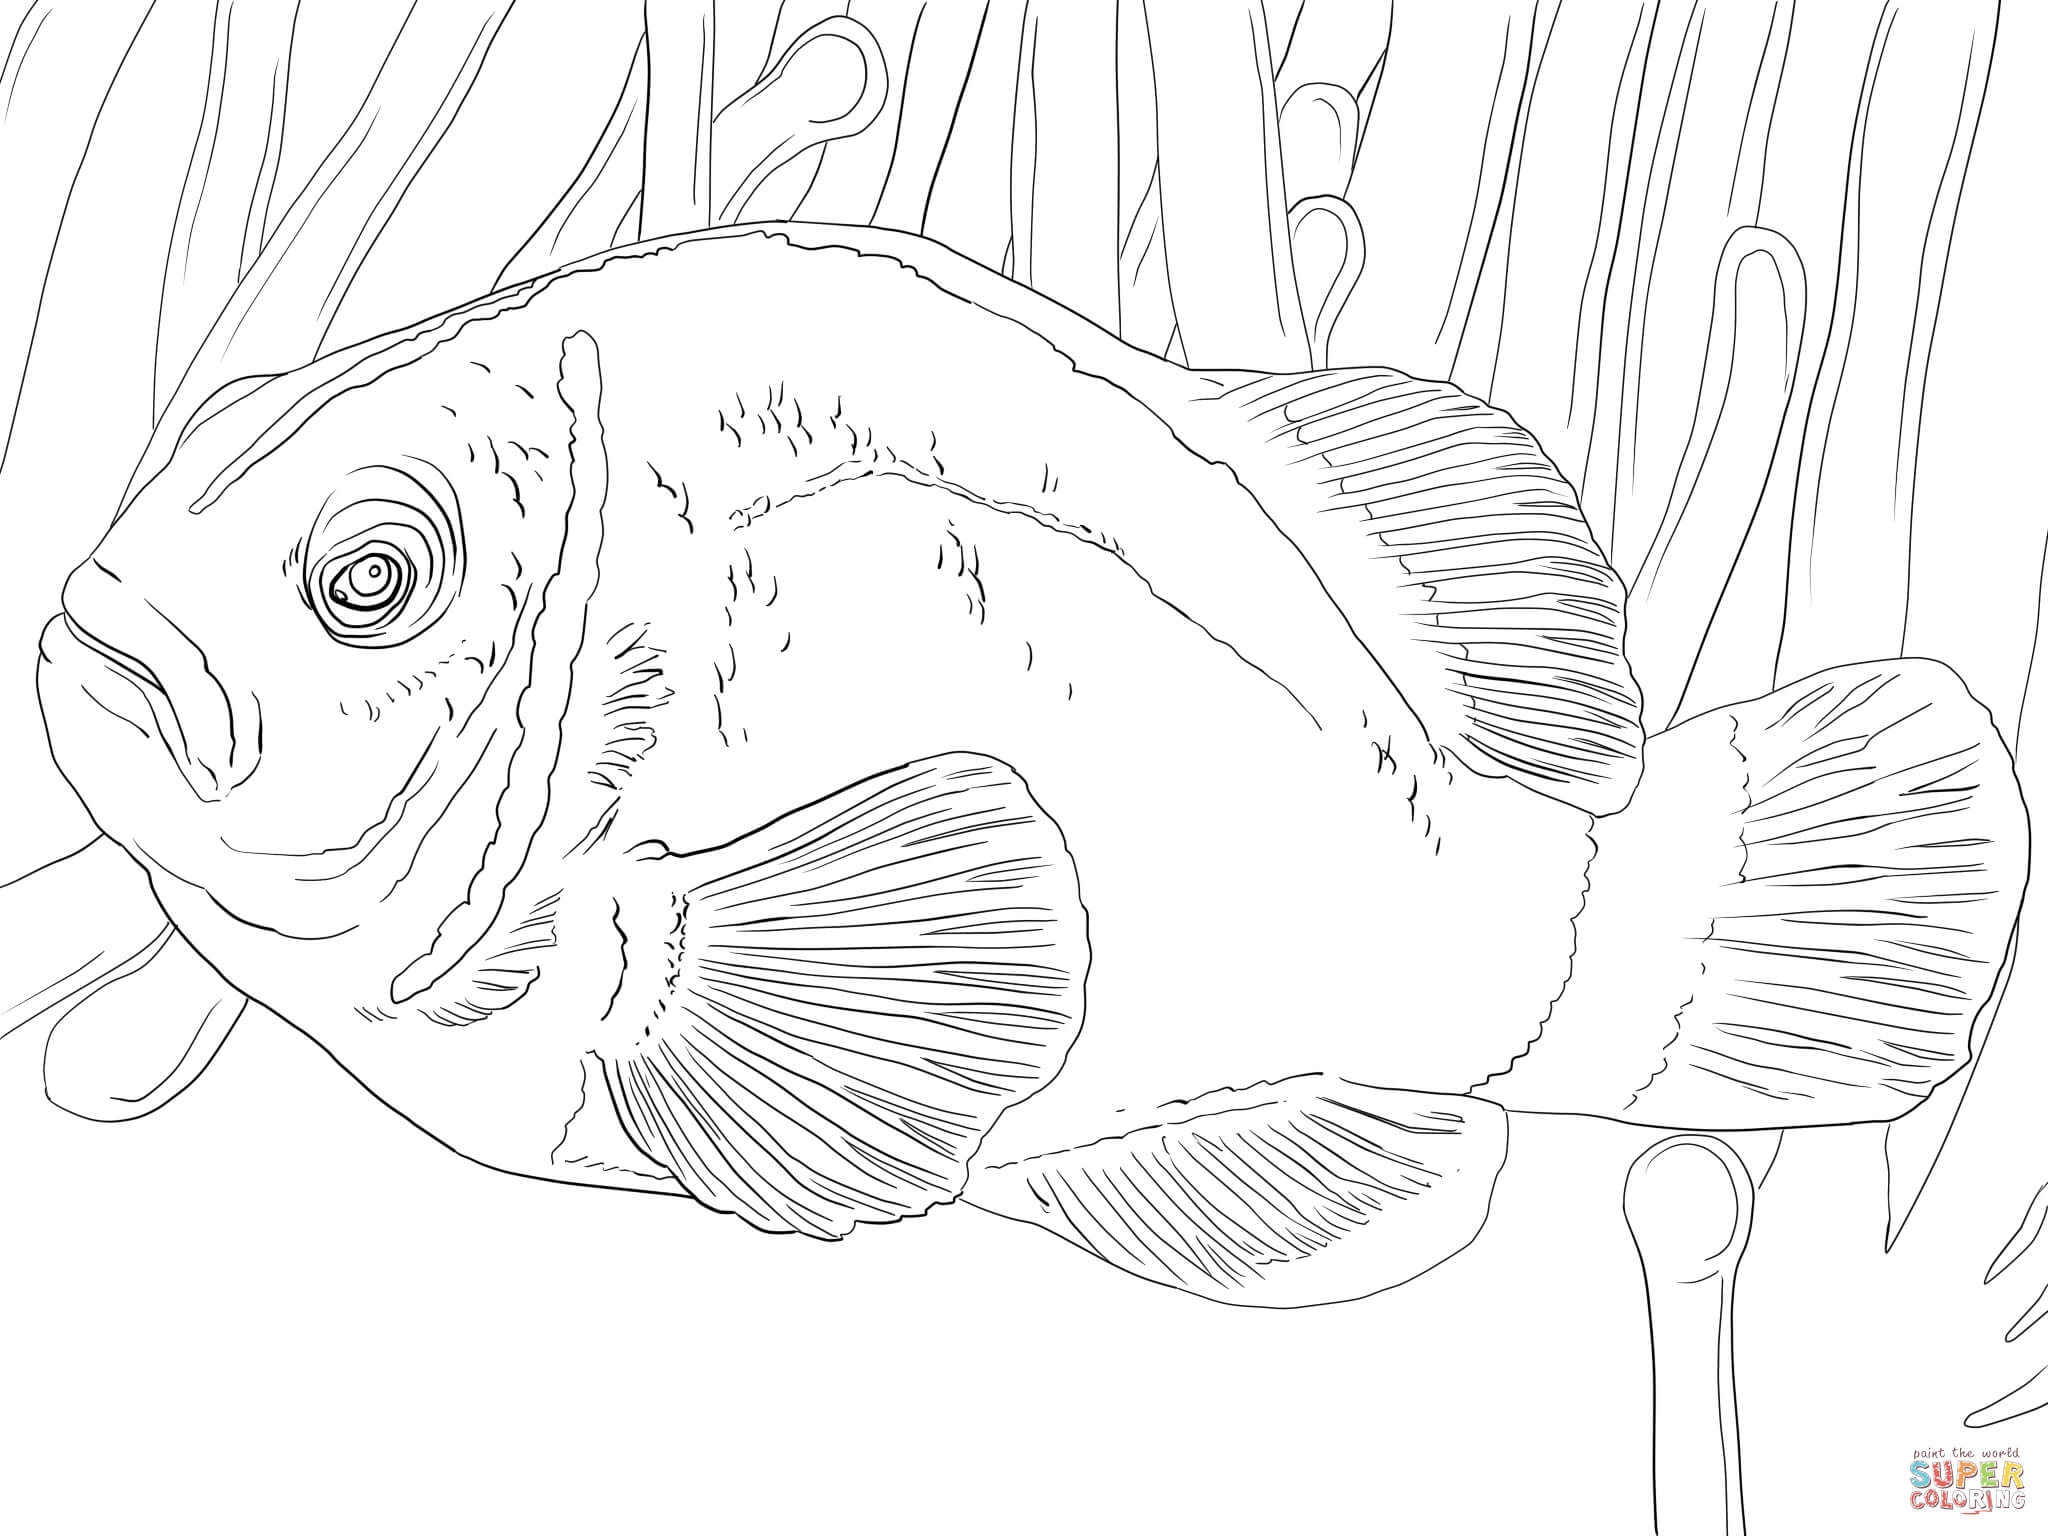 pink skunk clownfish coloring page free printable coloring pages